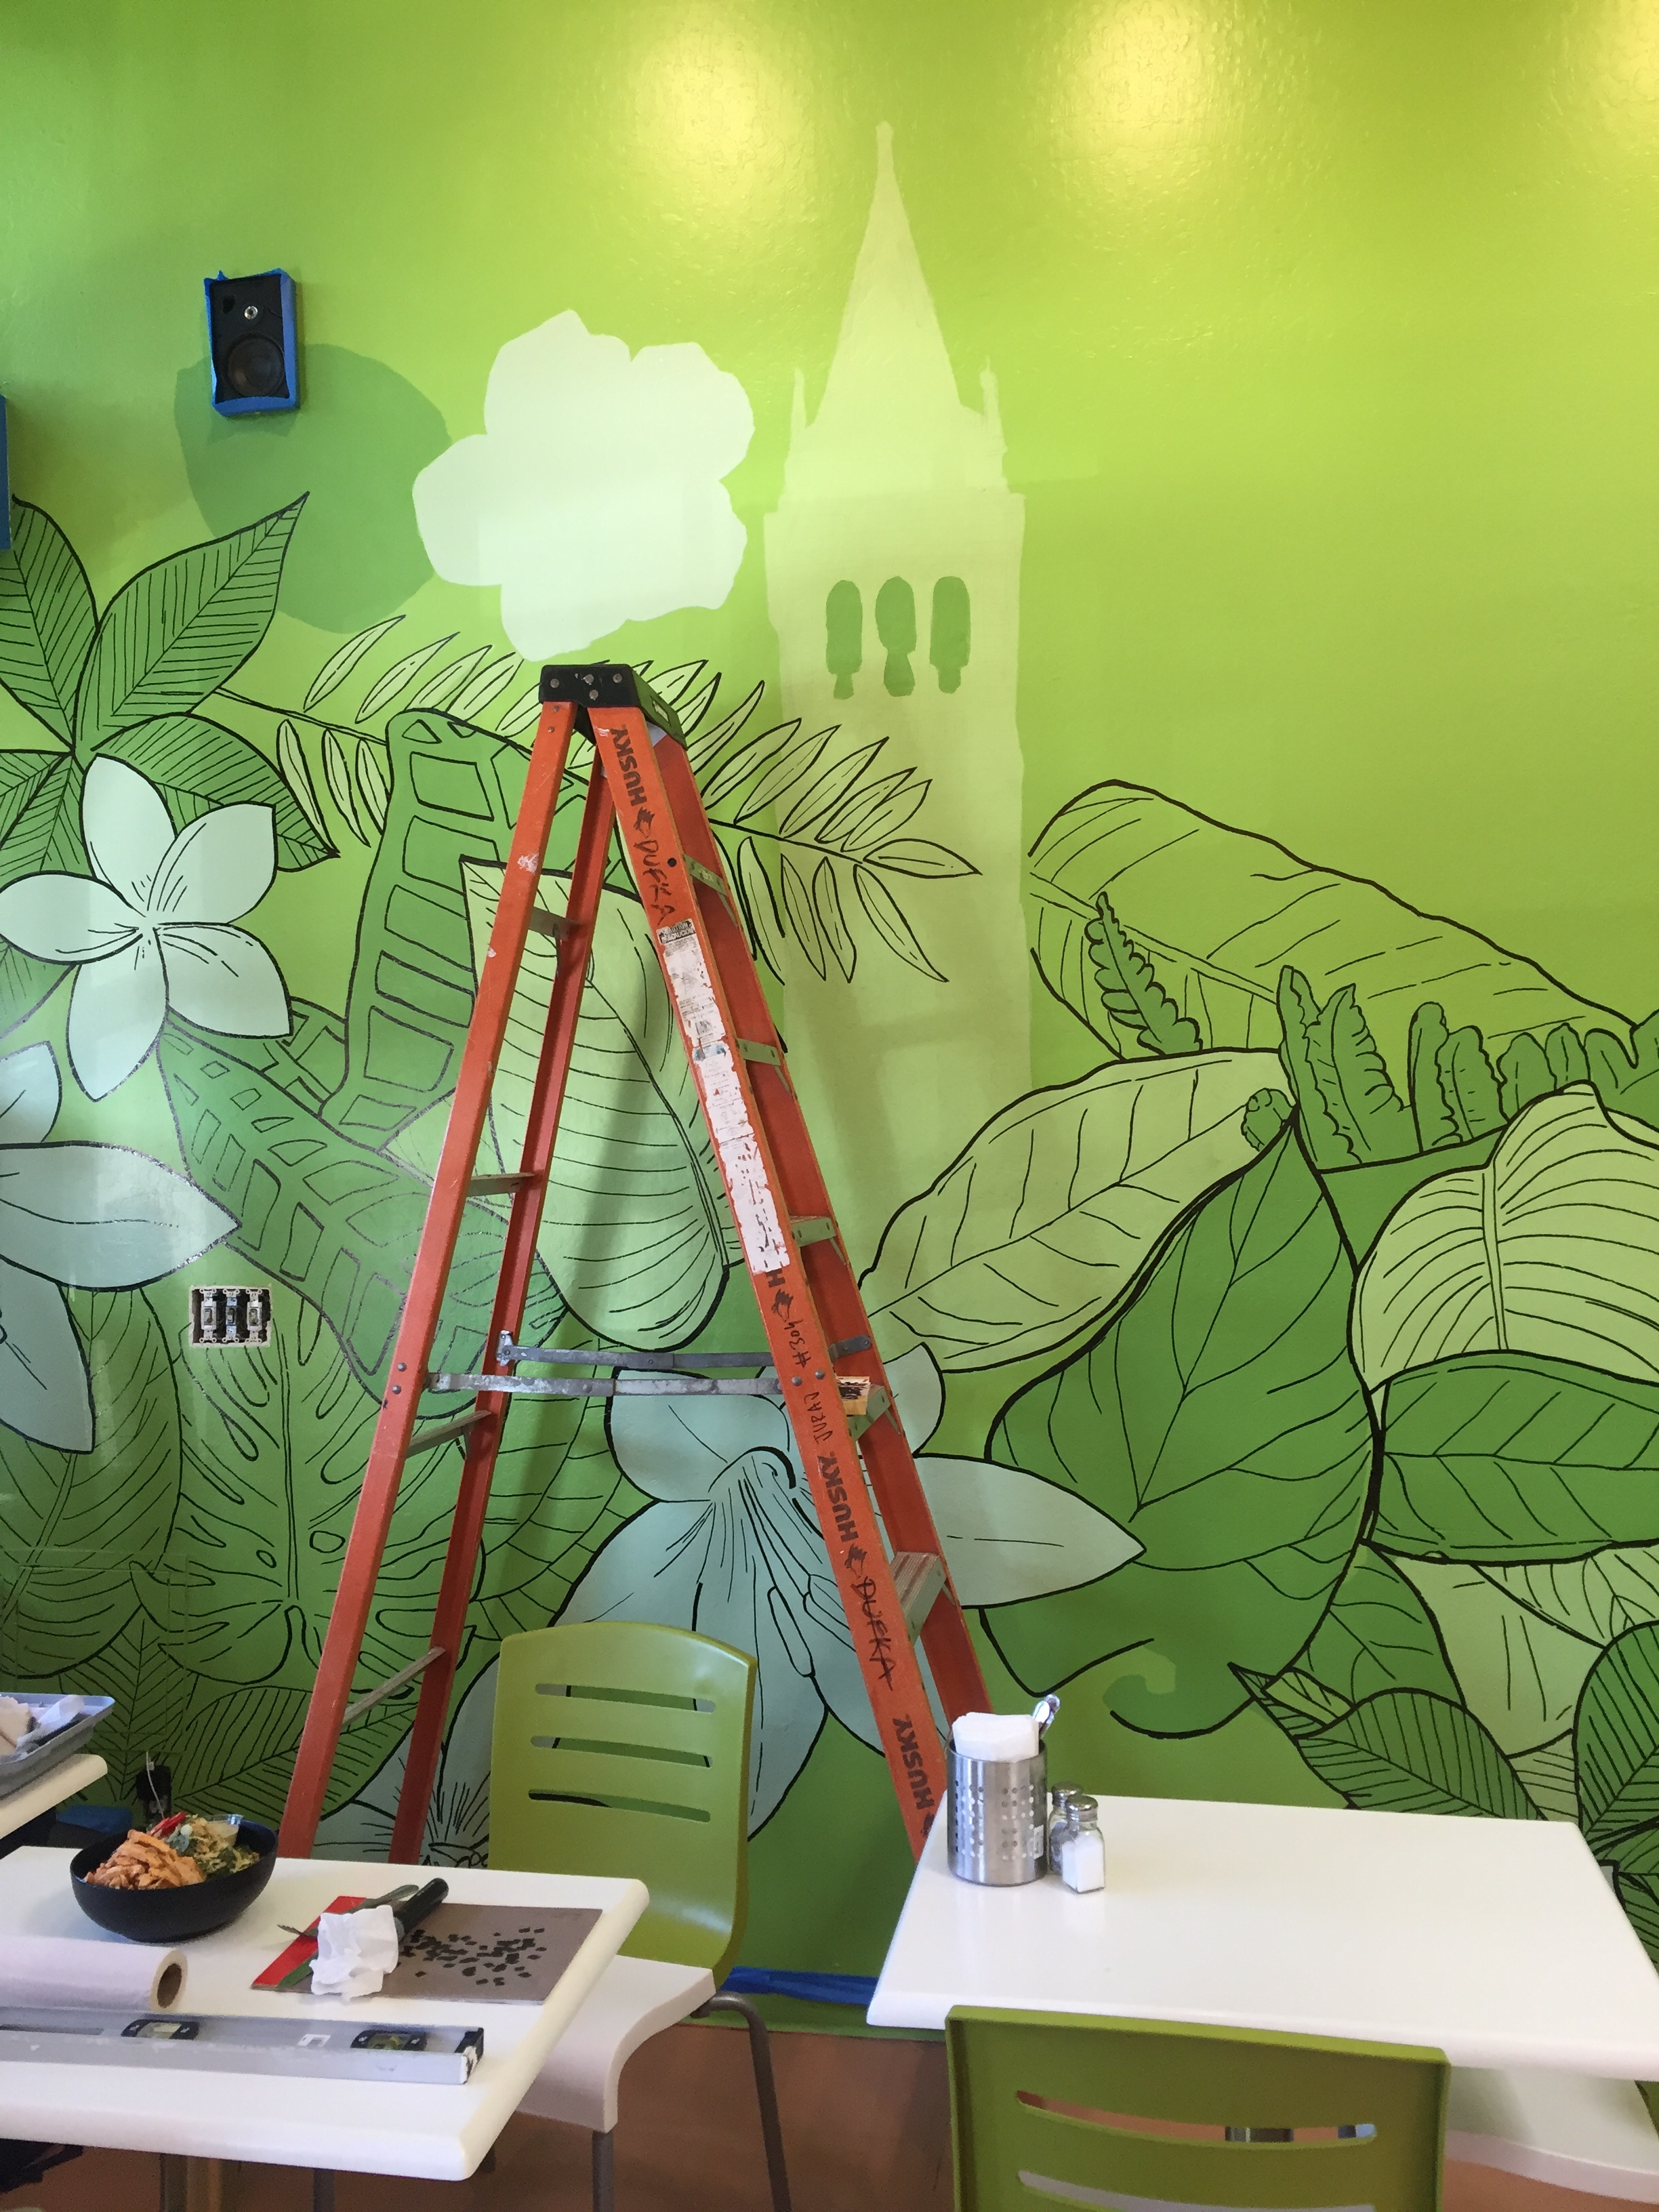 Office-commercial-mural-san-francisco-organic-greens-wall-and-wall-mural-company_002.jpeg